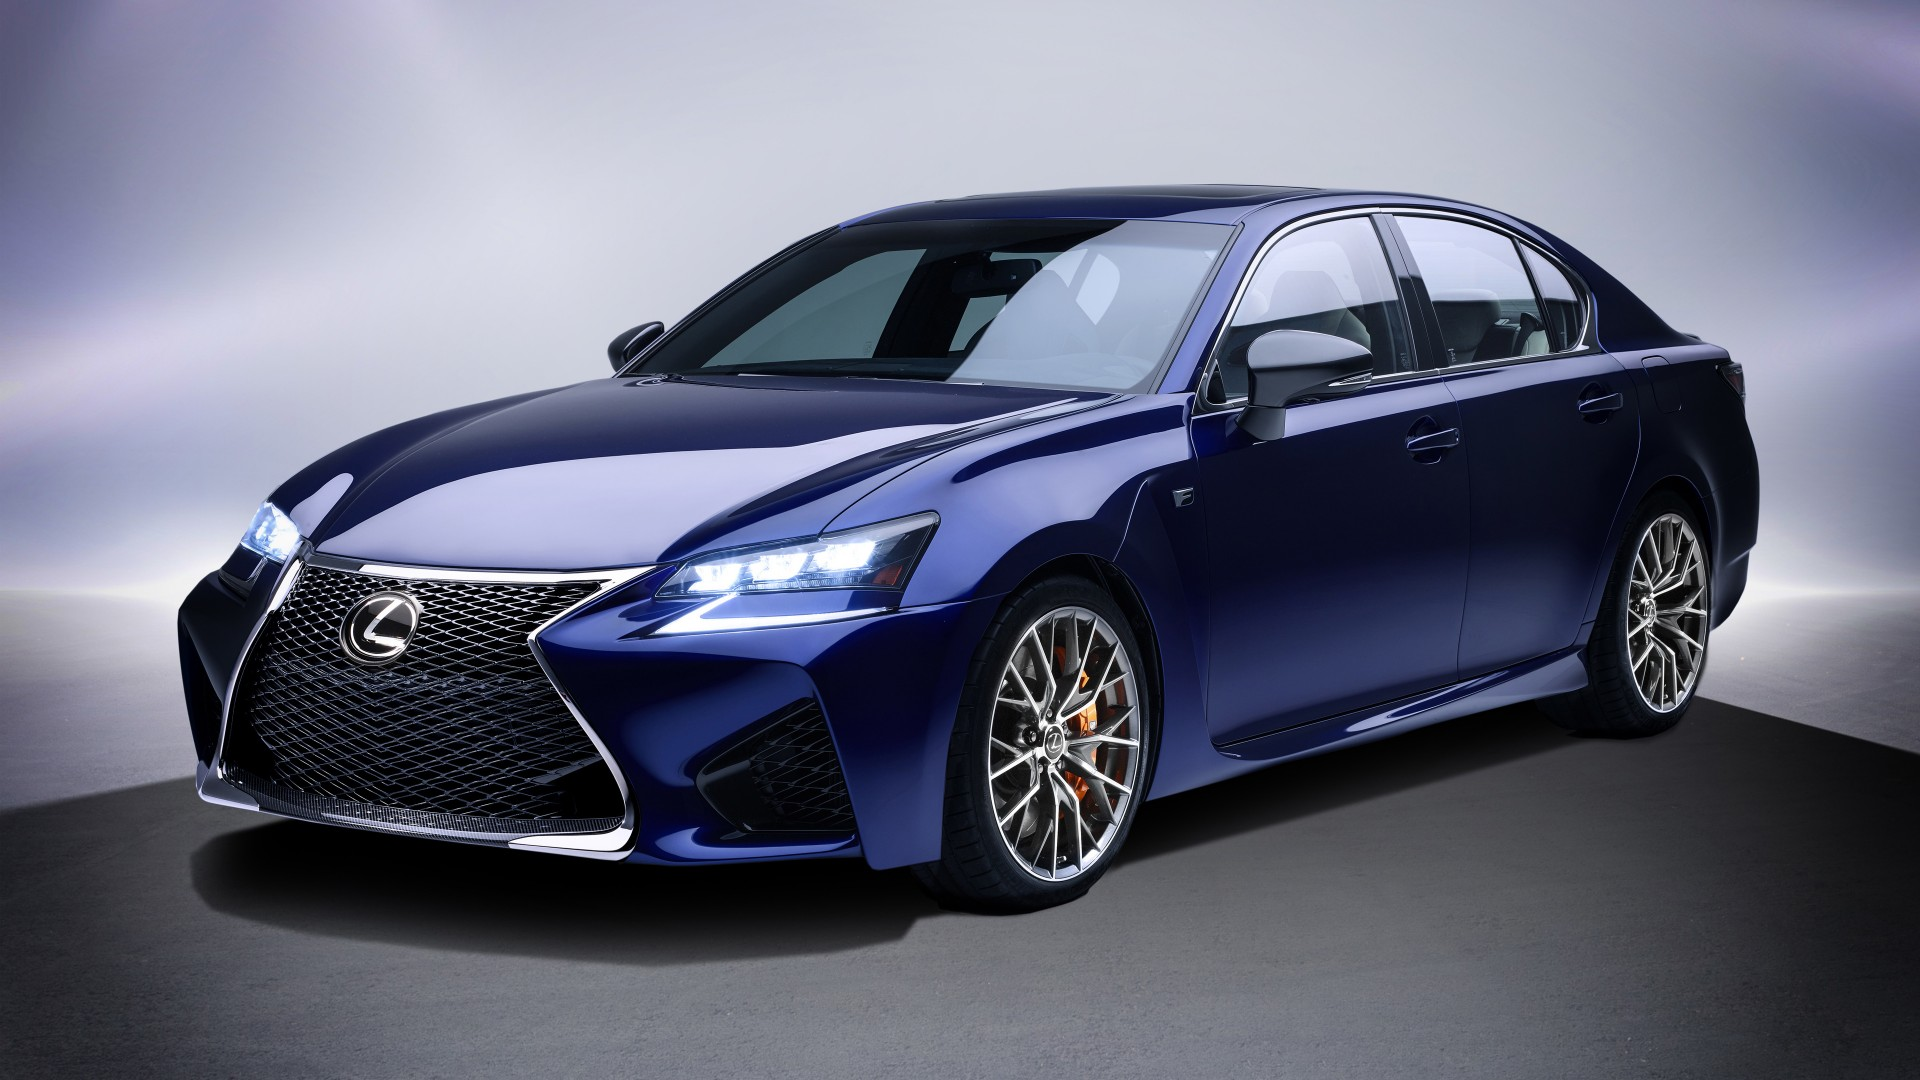 lexus gs f luxury sedan 2017 wallpaper hd car wallpapers id 7189. Black Bedroom Furniture Sets. Home Design Ideas